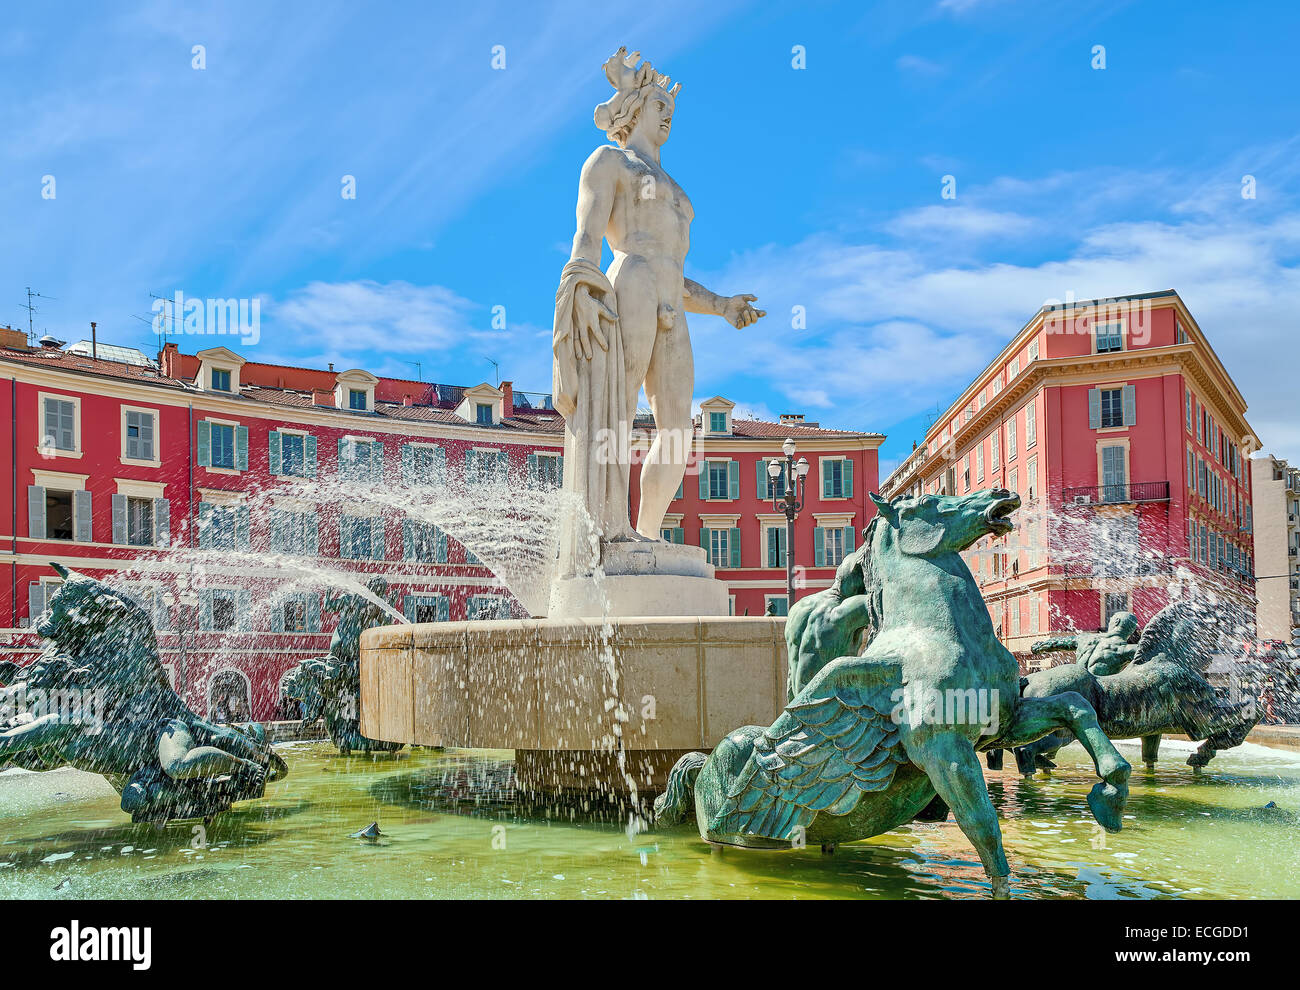 Famous Fontaine du Soleil (Fountain of the Sun) in Place Massena in Nice, France. - Stock Image